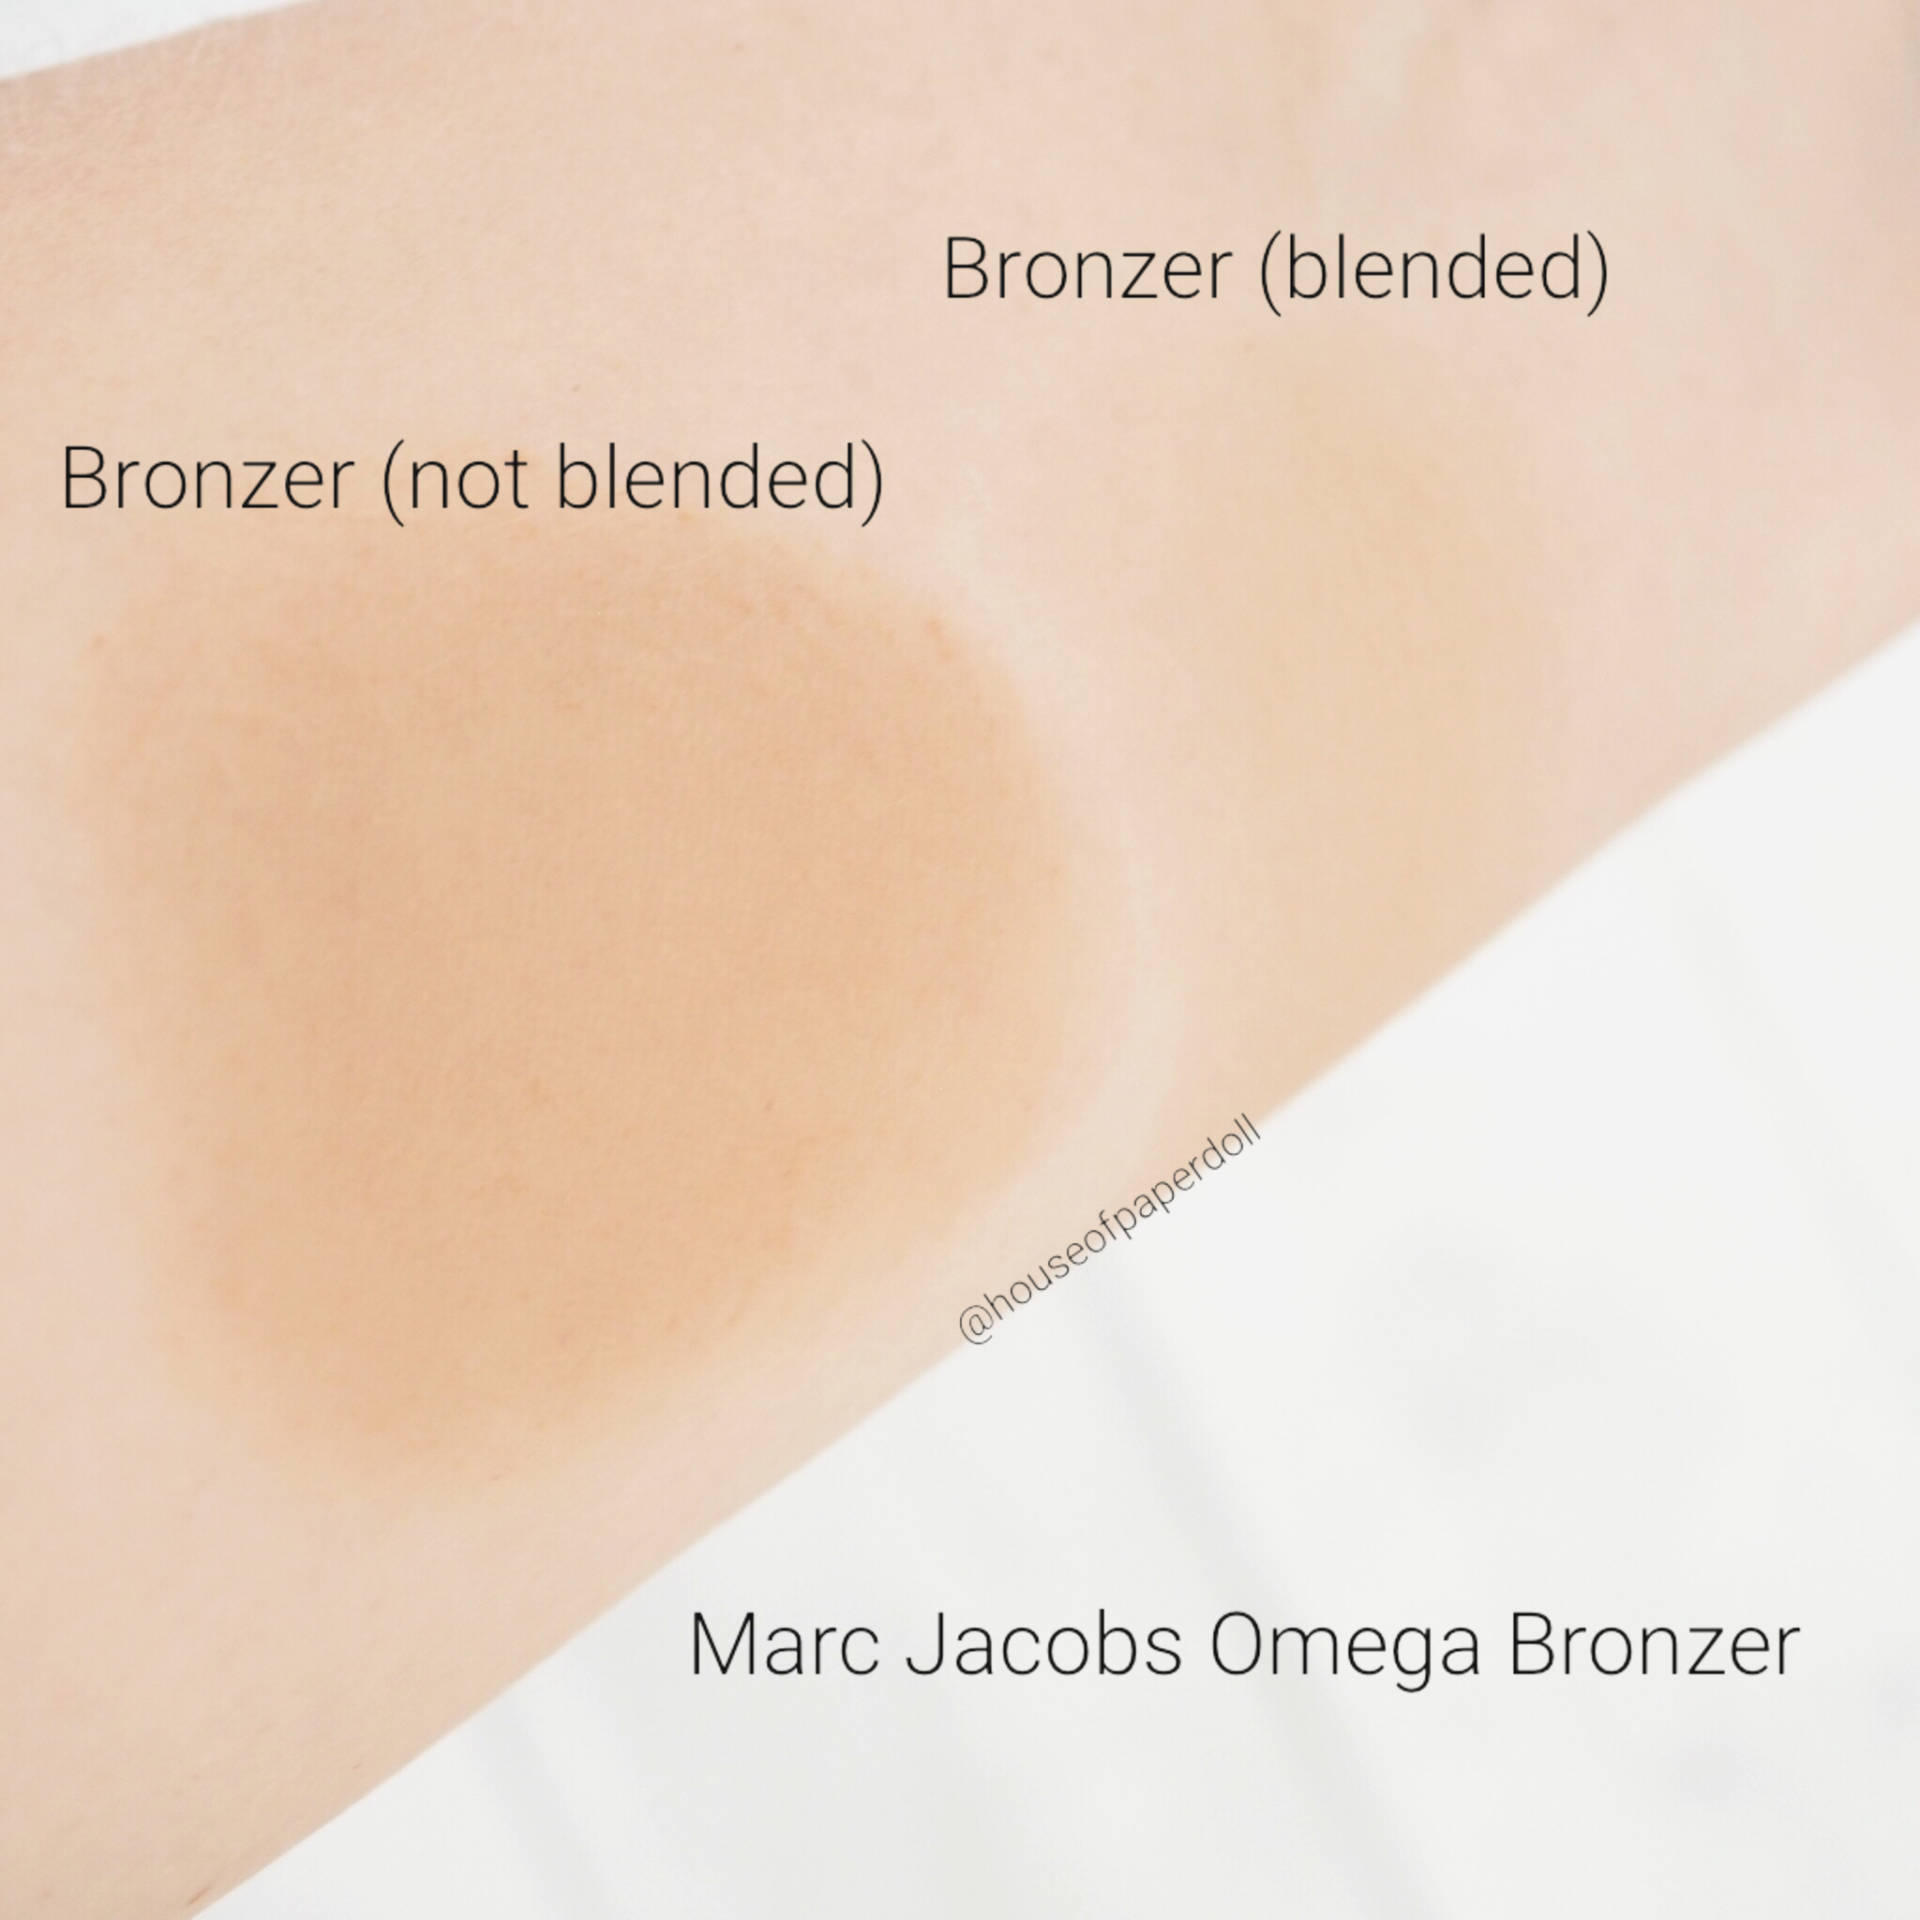 Marc Jacobs Omega Bronzer Swatches